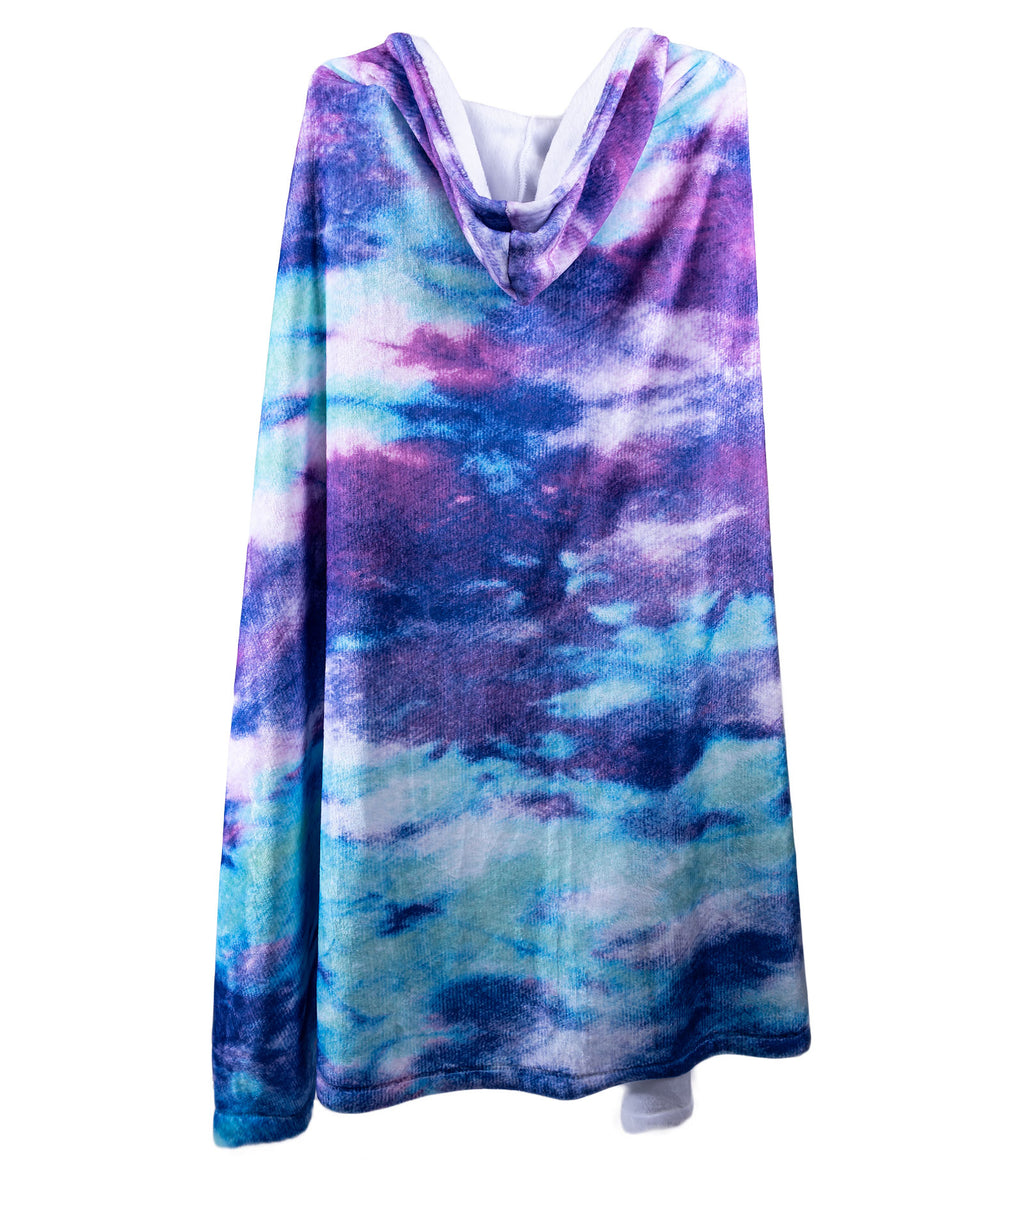 Penelope Wildberry Bleach Tie-Dye Hood Blanket